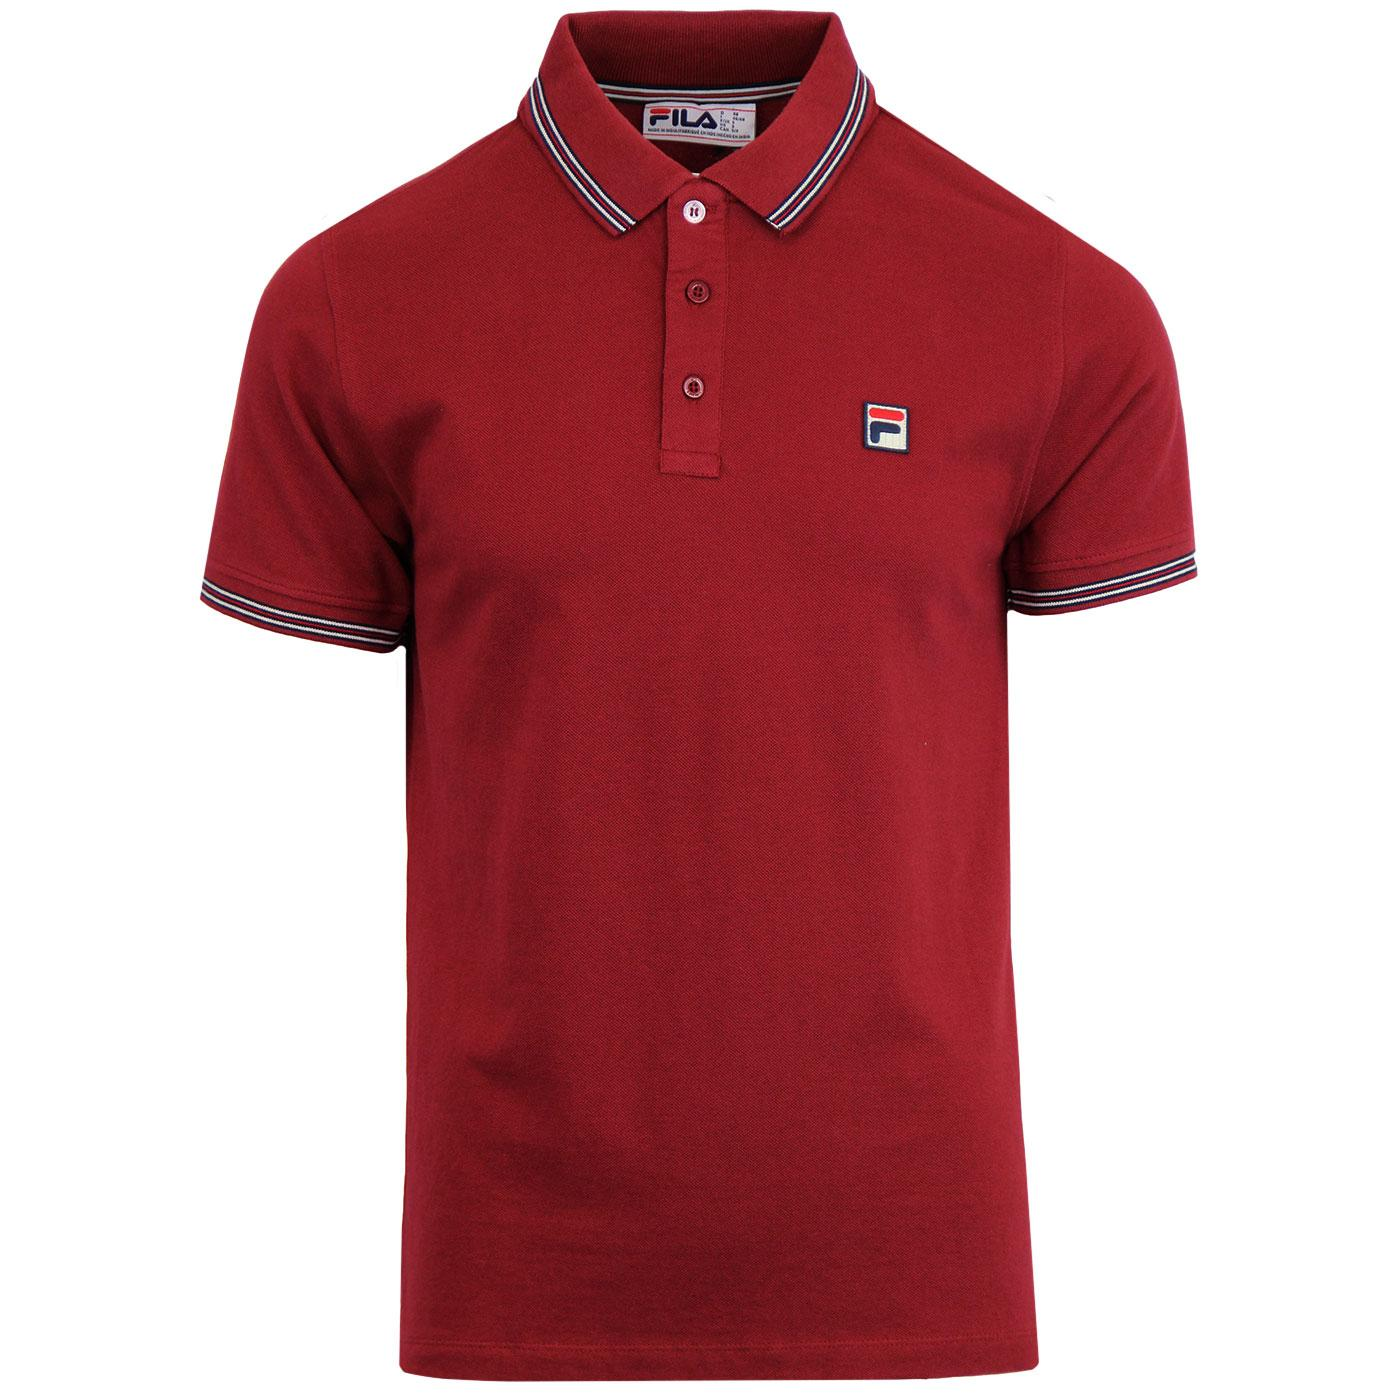 Matcho FILA VINTAGE Retro 70s Tipped Polo Top RED